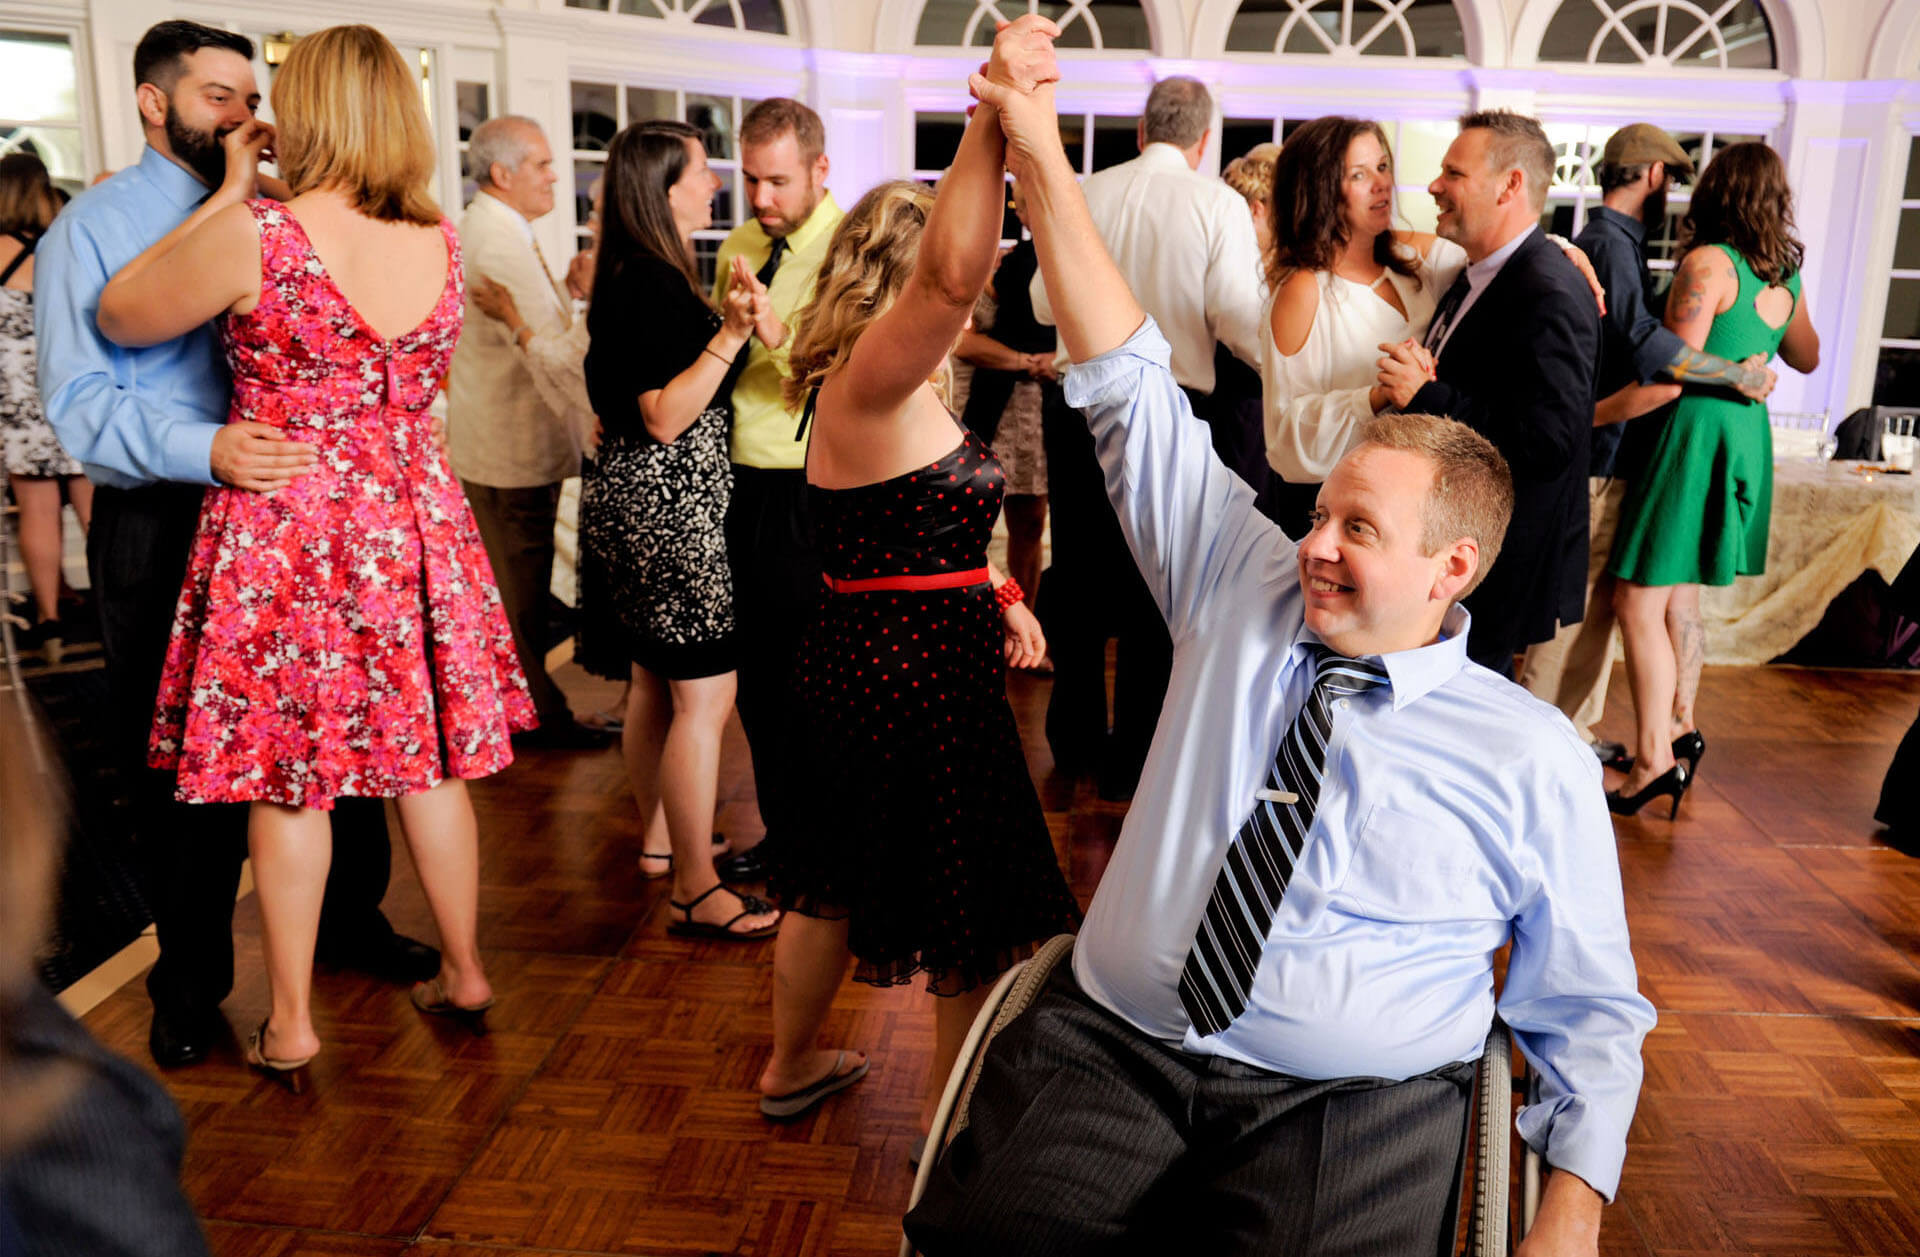 A couple dance on the tight dance floor at Cherry Creek in Shelby Charter Township, Michigan and manage to dance at the wedding reception easily navigating the guest's wheelchair.